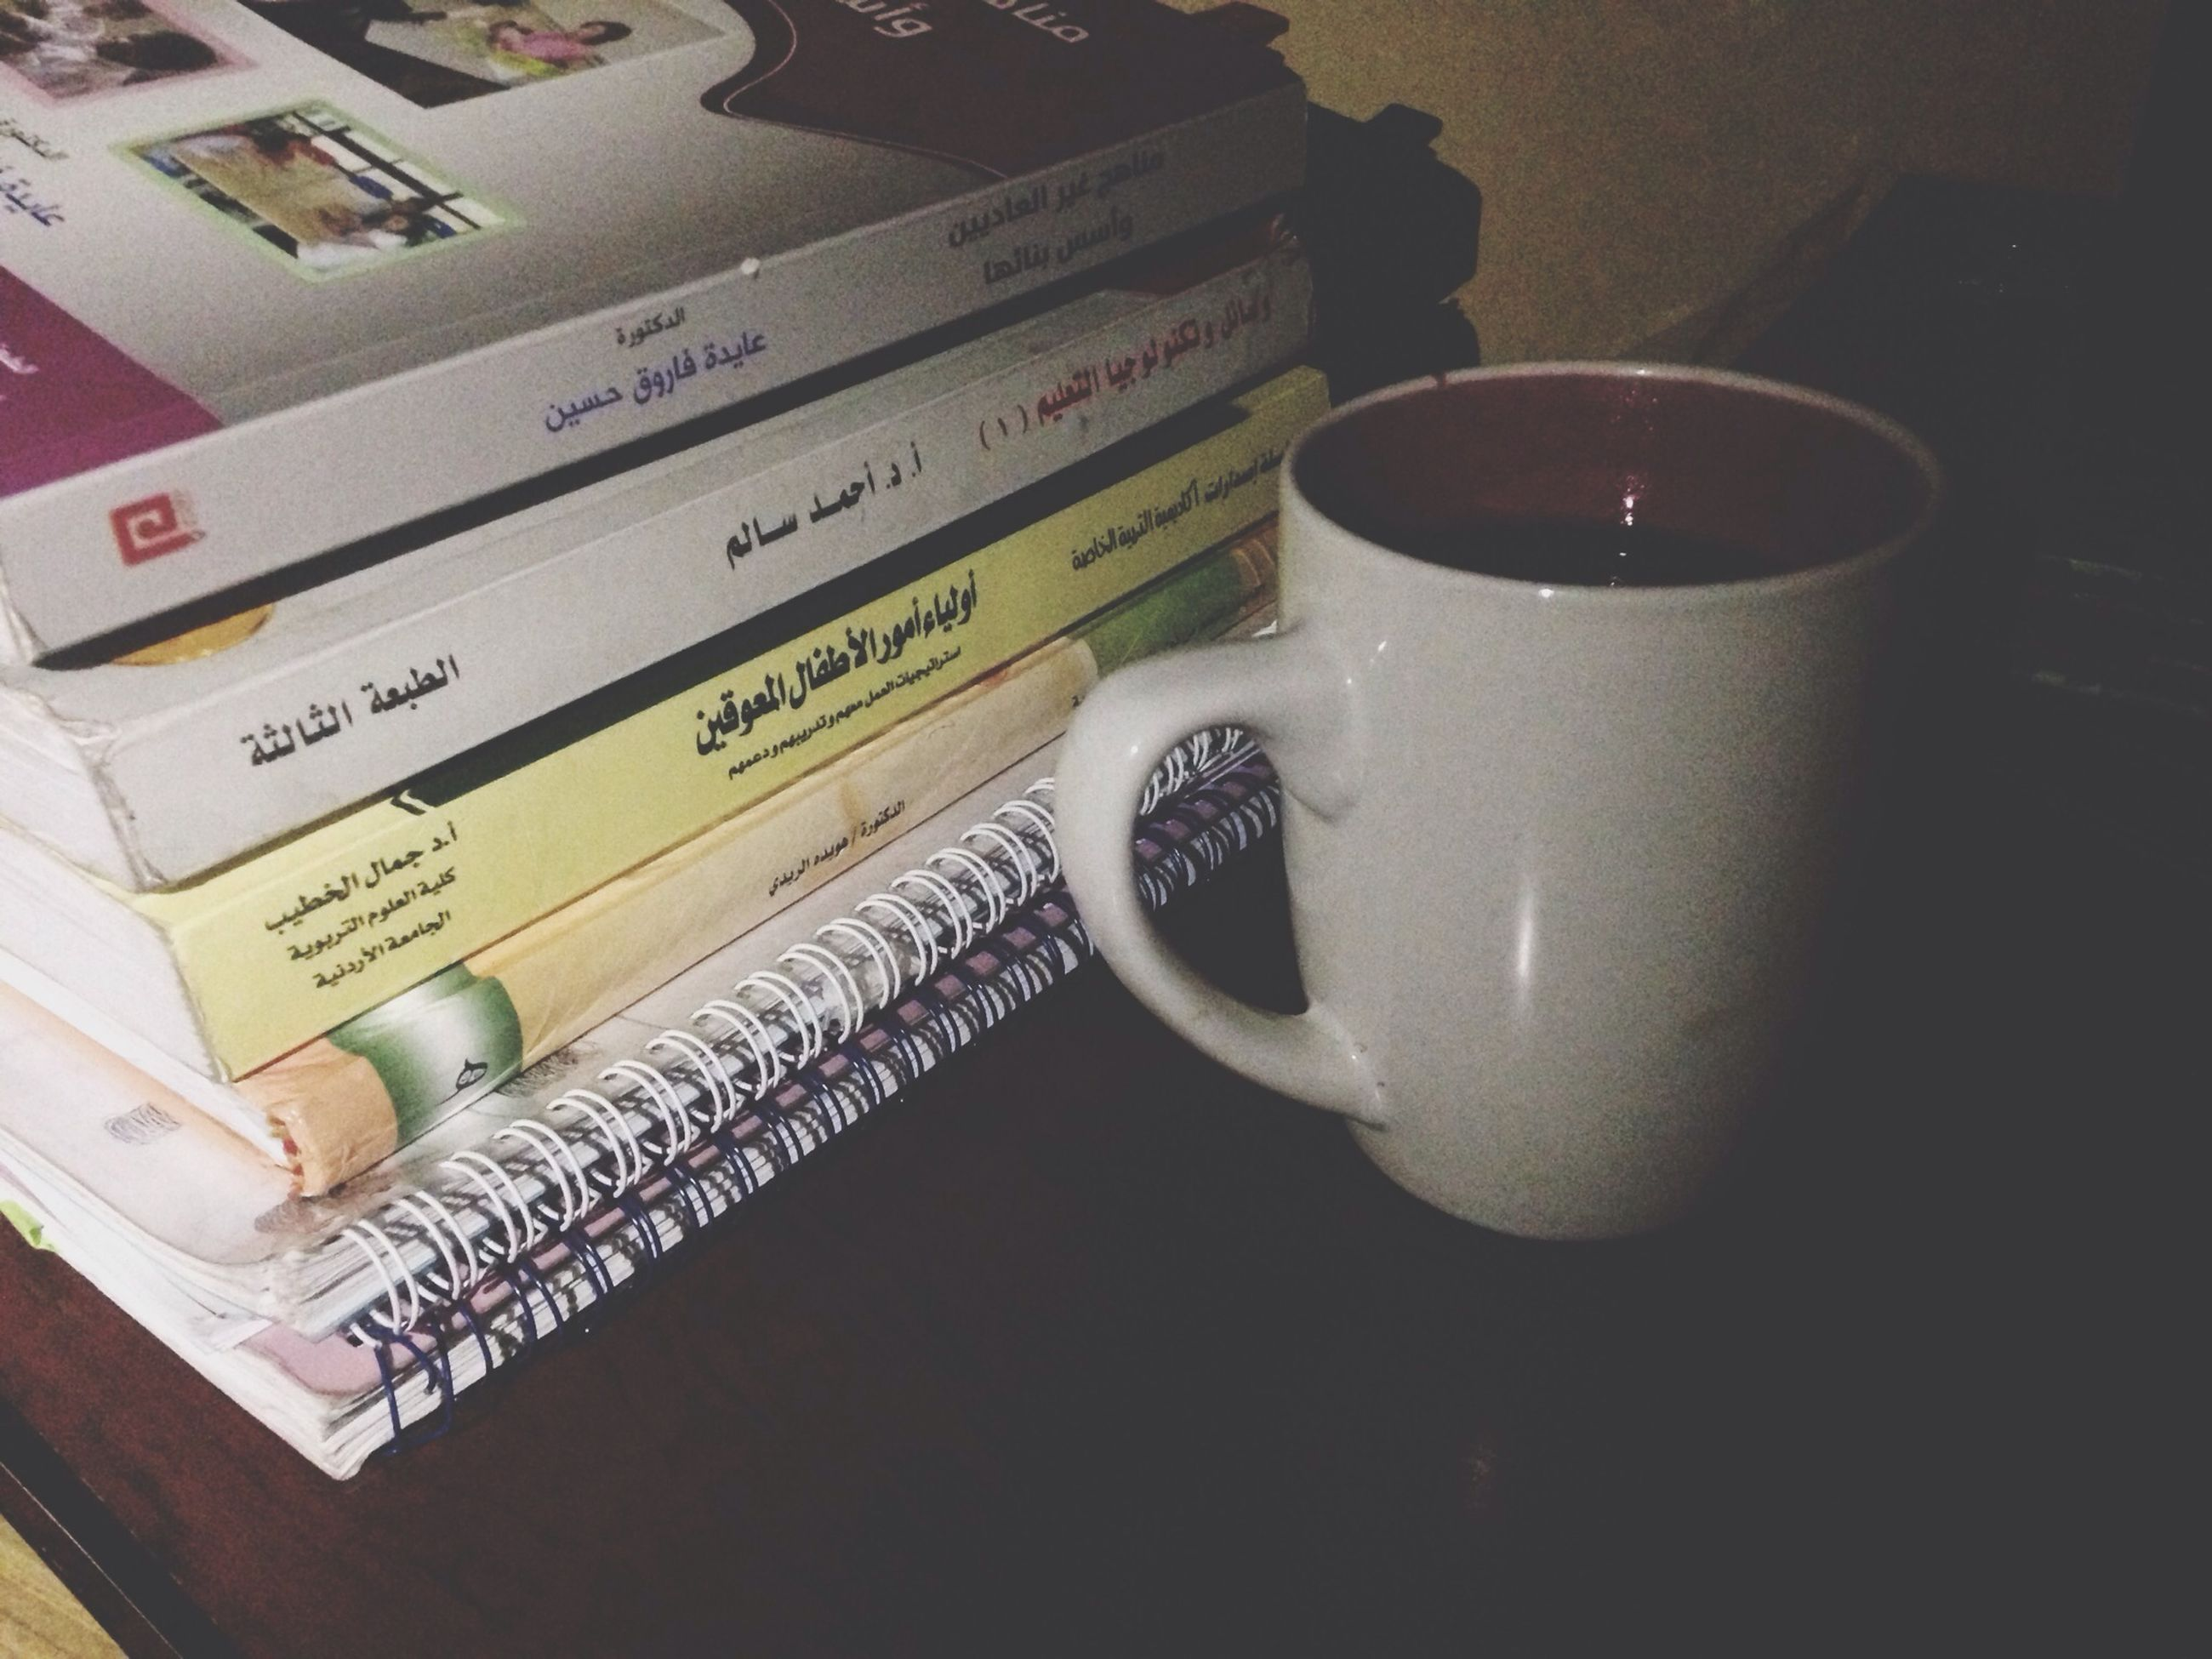 indoors, table, still life, food and drink, text, book, drink, communication, coffee cup, western script, high angle view, close-up, refreshment, paper, freshness, coffee - drink, cup, education, no people, food